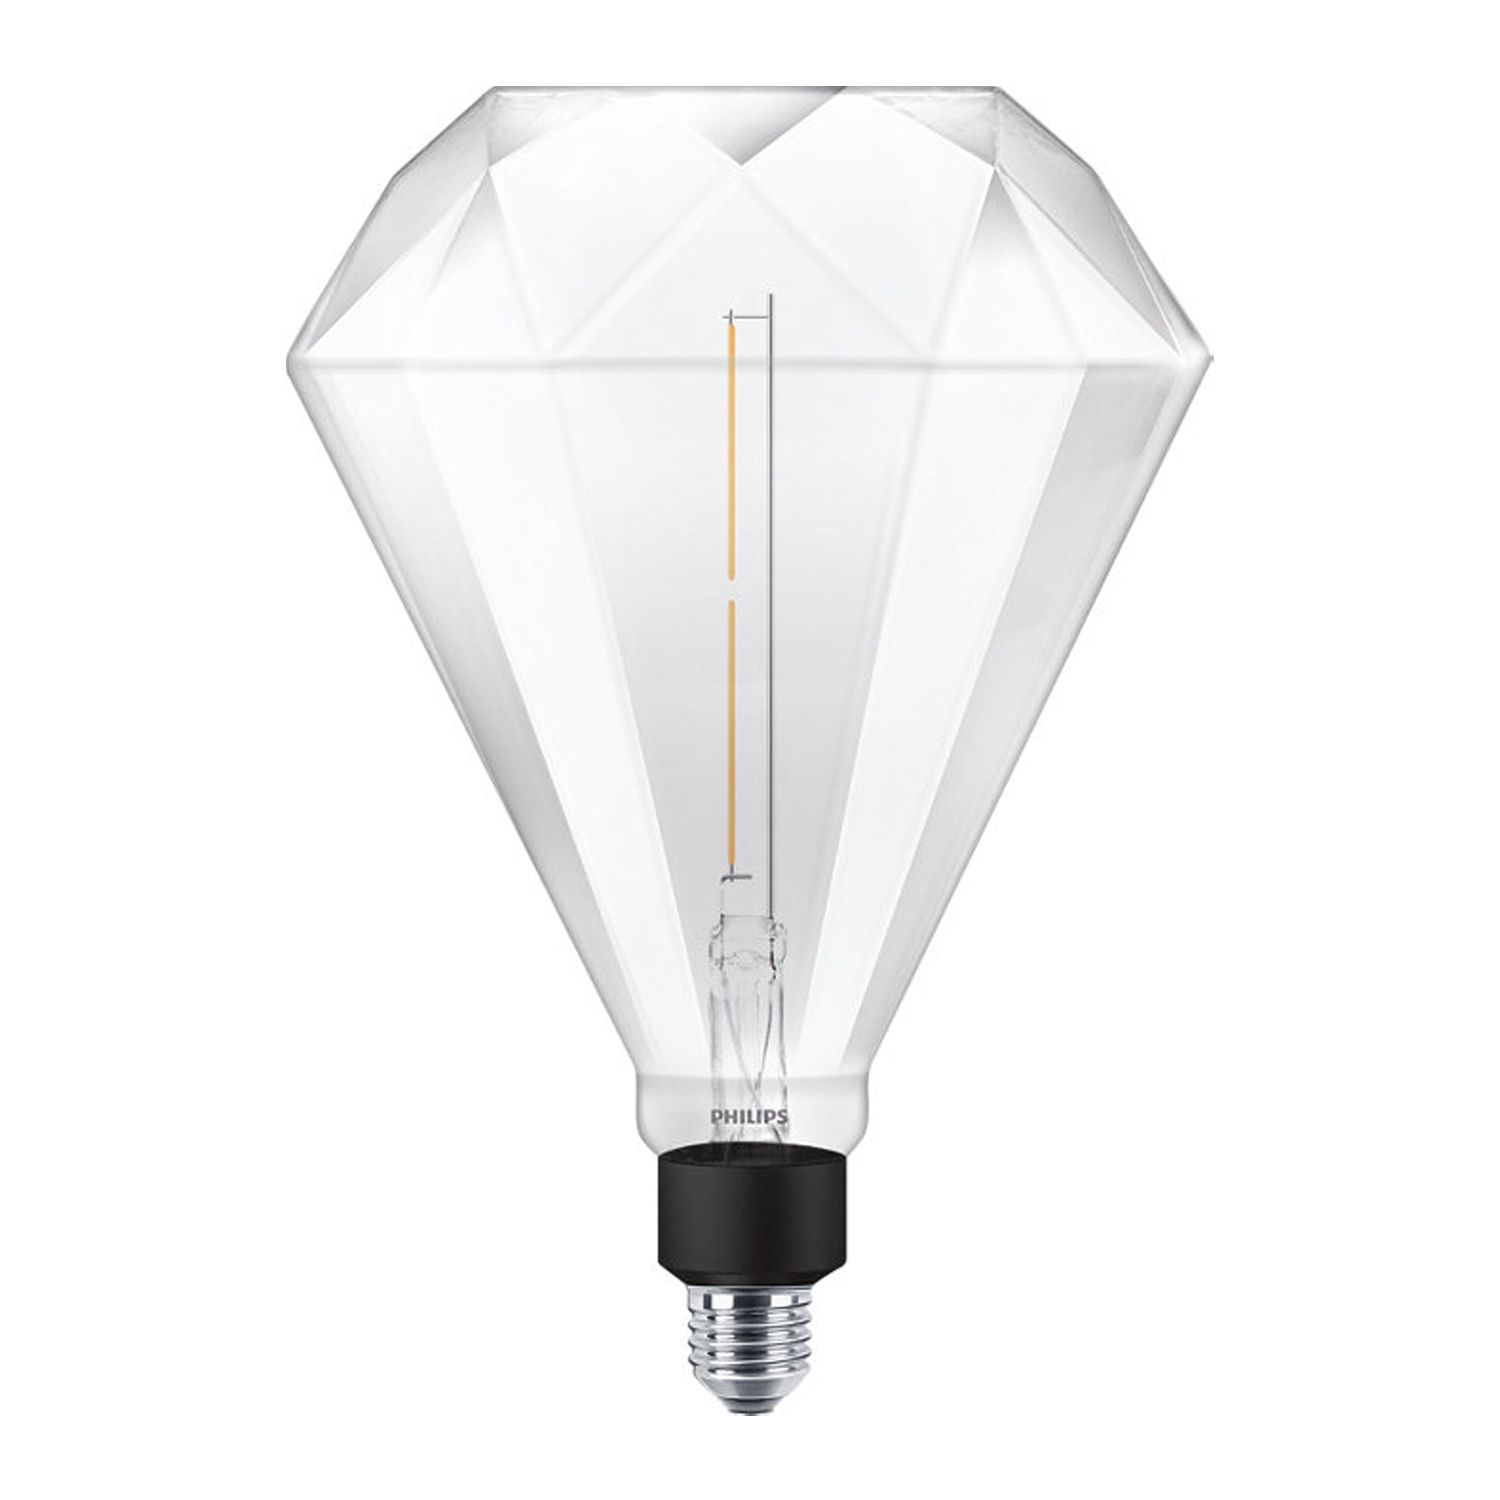 Philips LED Diamond Giant E27 4W 830 | Dimbaar - Vervanger voor 35W